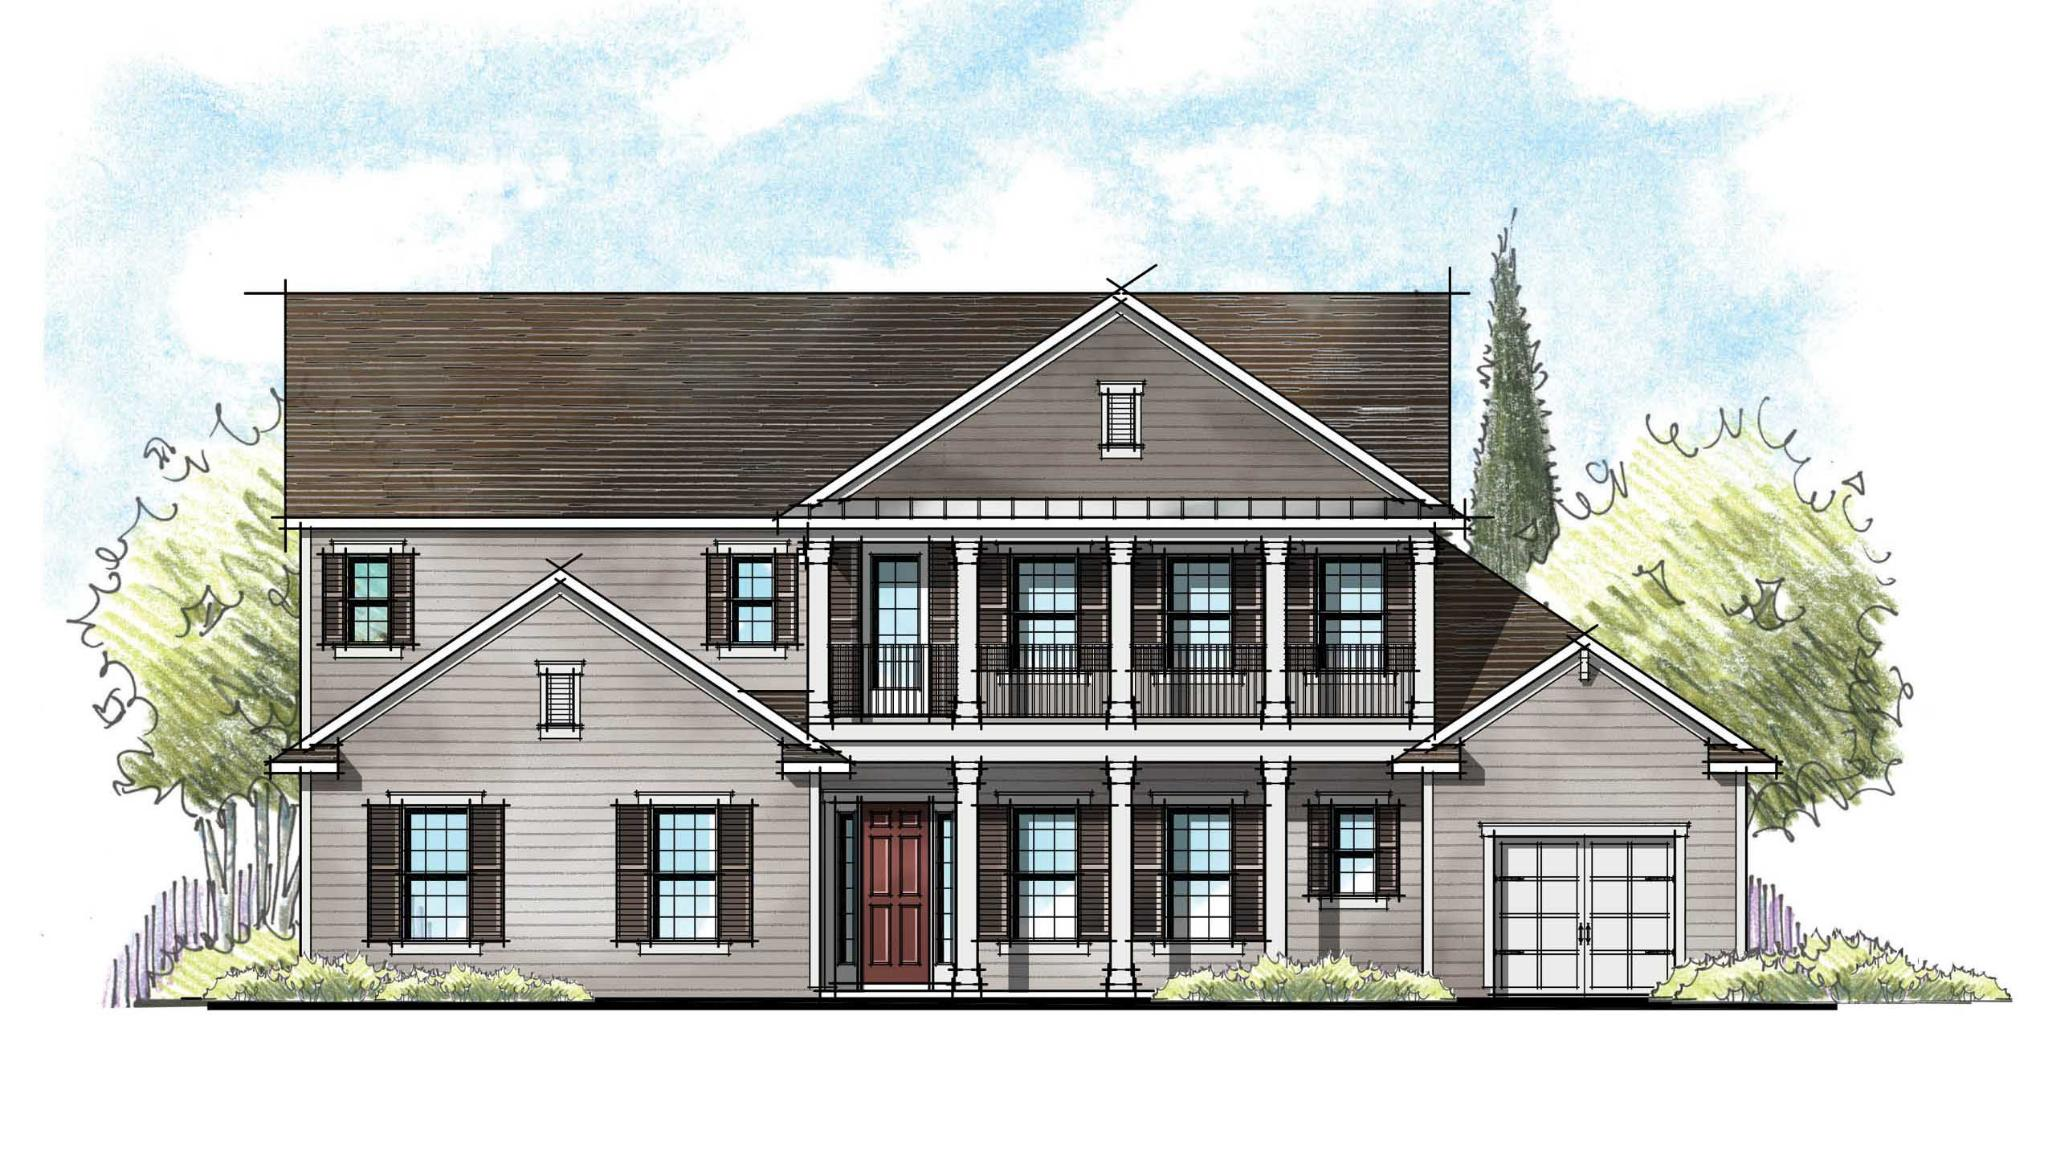 The Charlotte Coastal Elevation 2